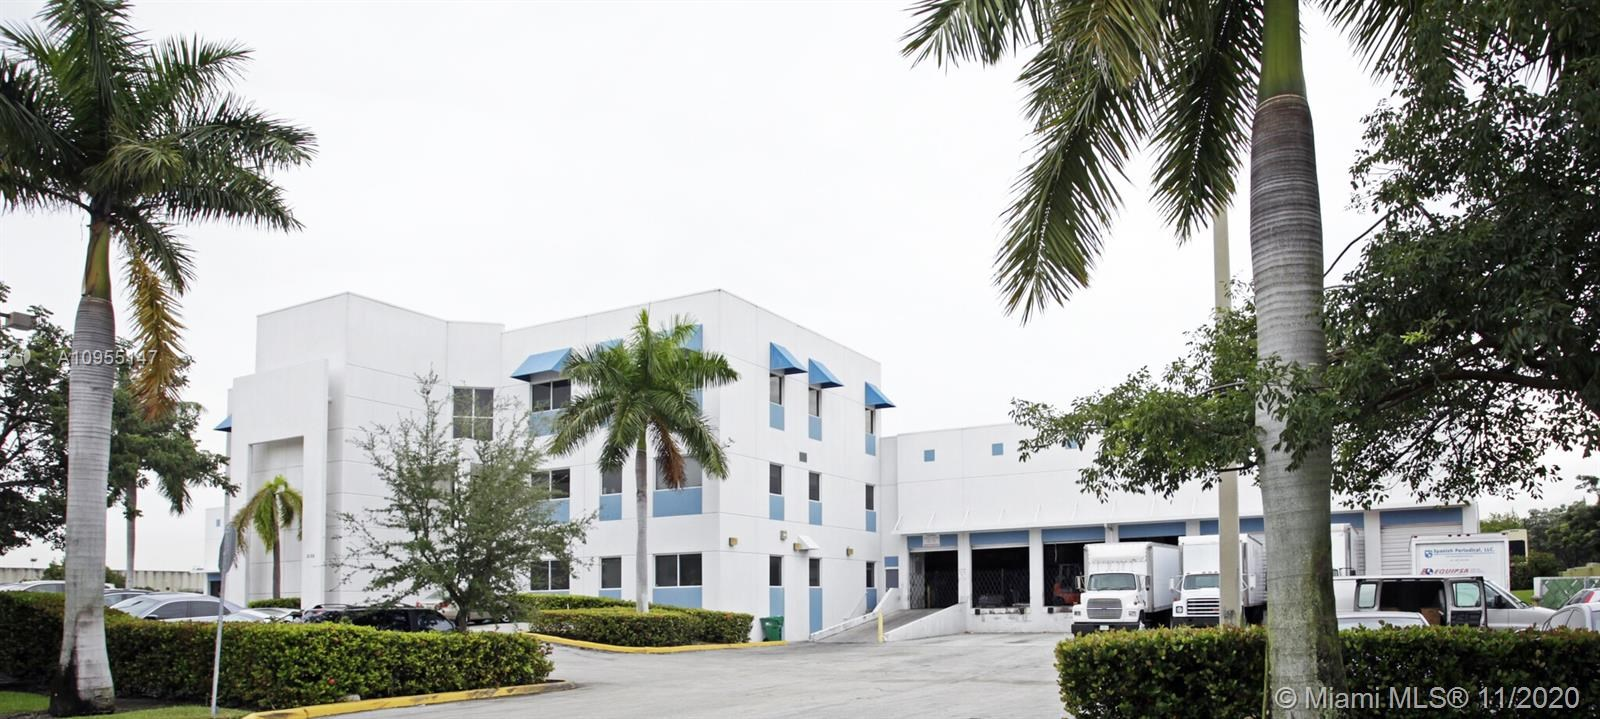 2105 NW 102 AVE, Doral, FL 33172